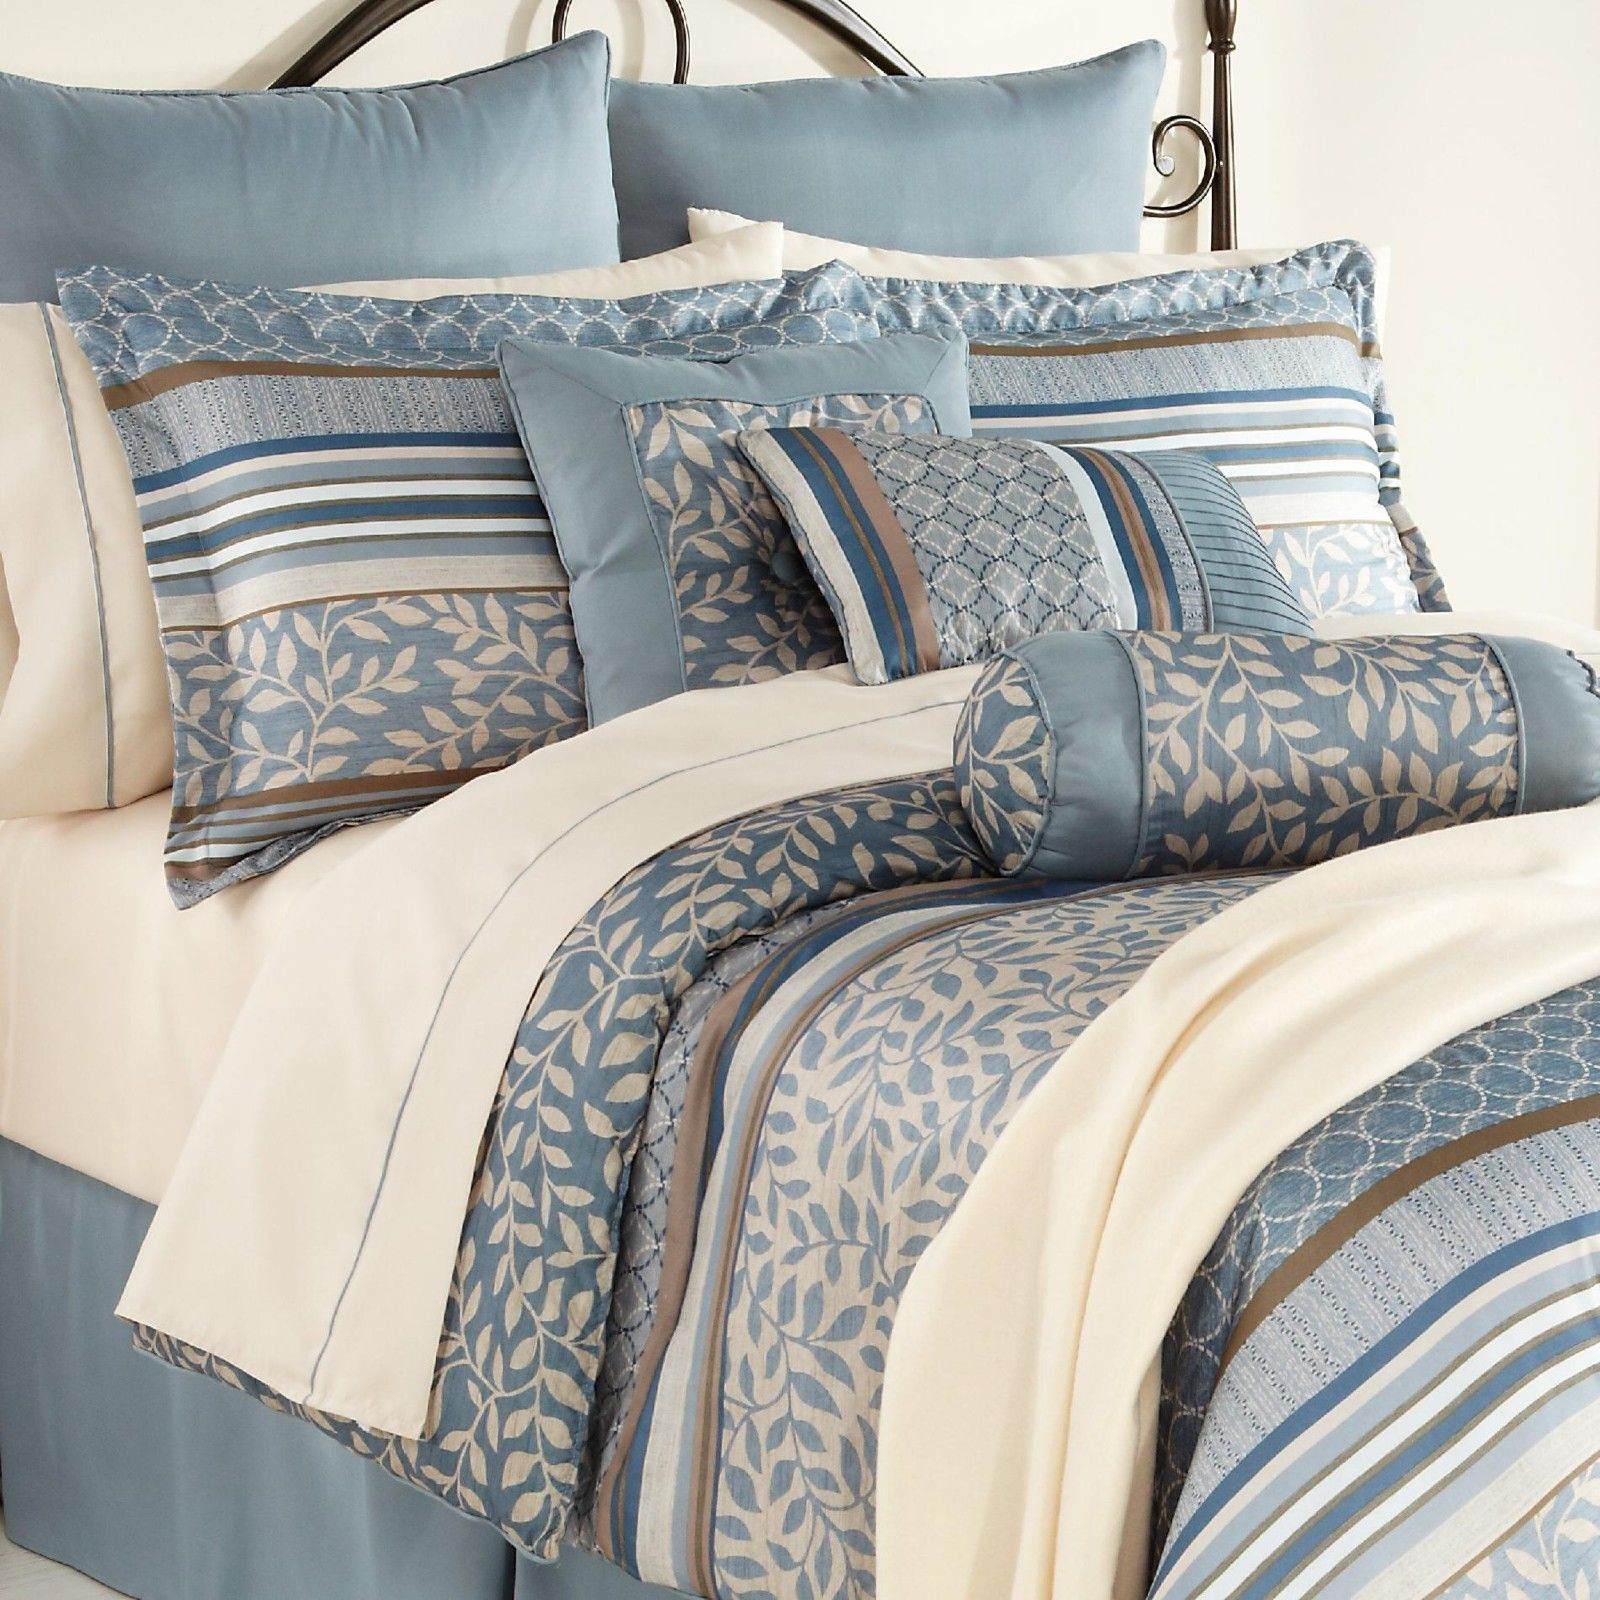 Cal King Comforter Sets | Kmart Bed Sets | Kmart Patio Furniture Clearance